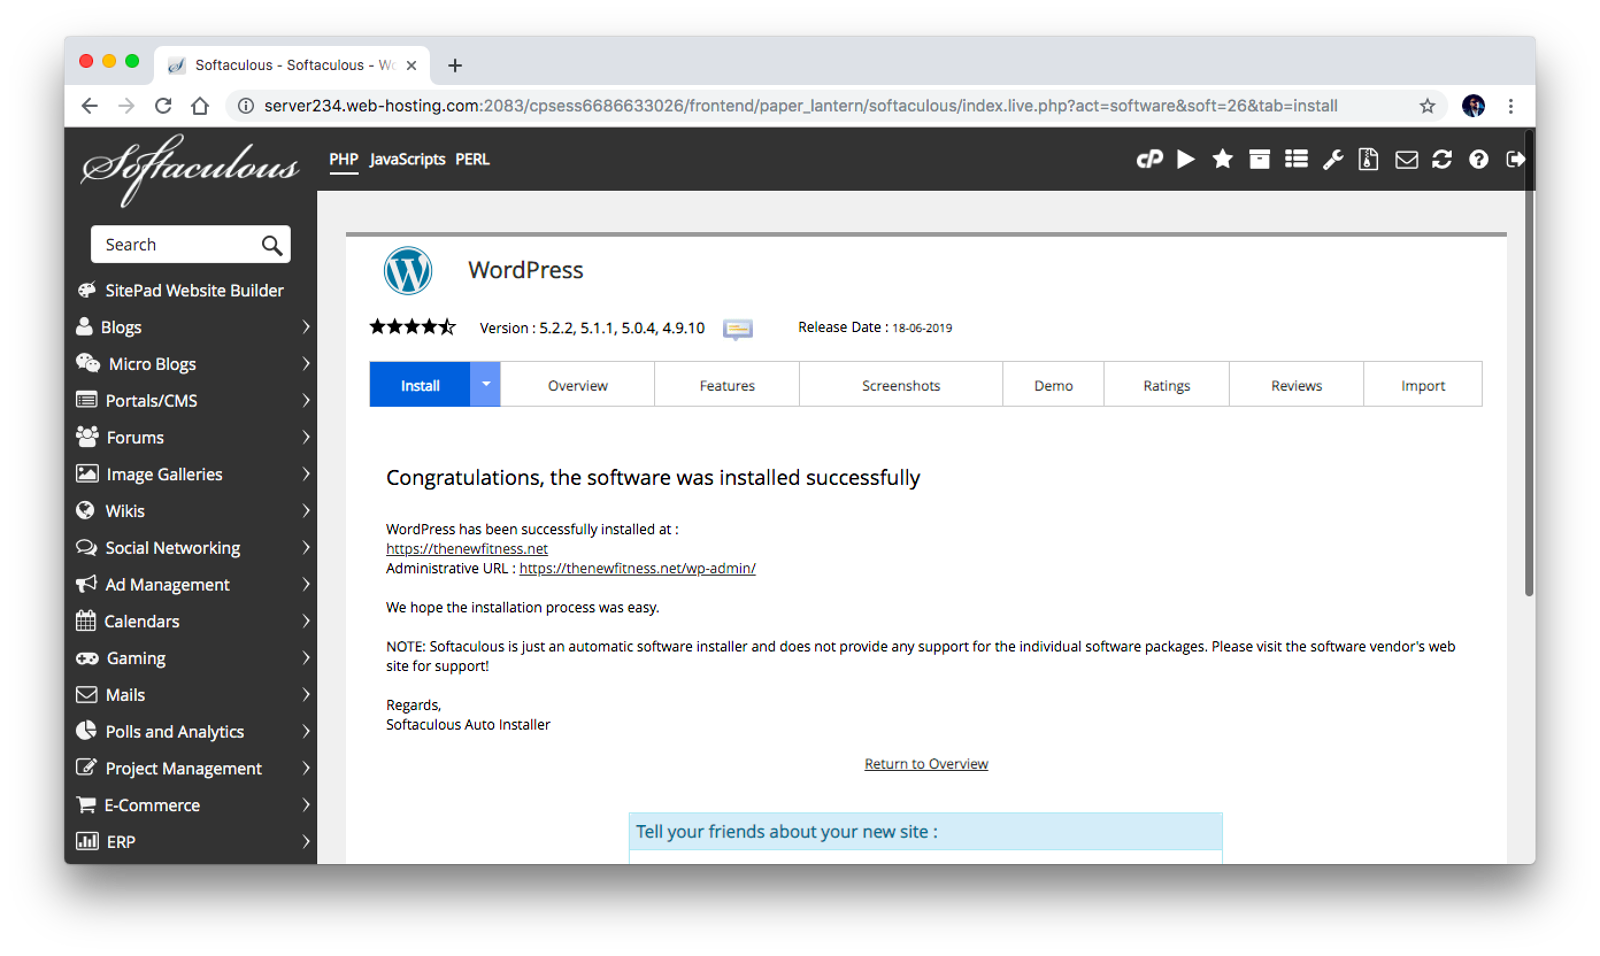 WordPress has been installed